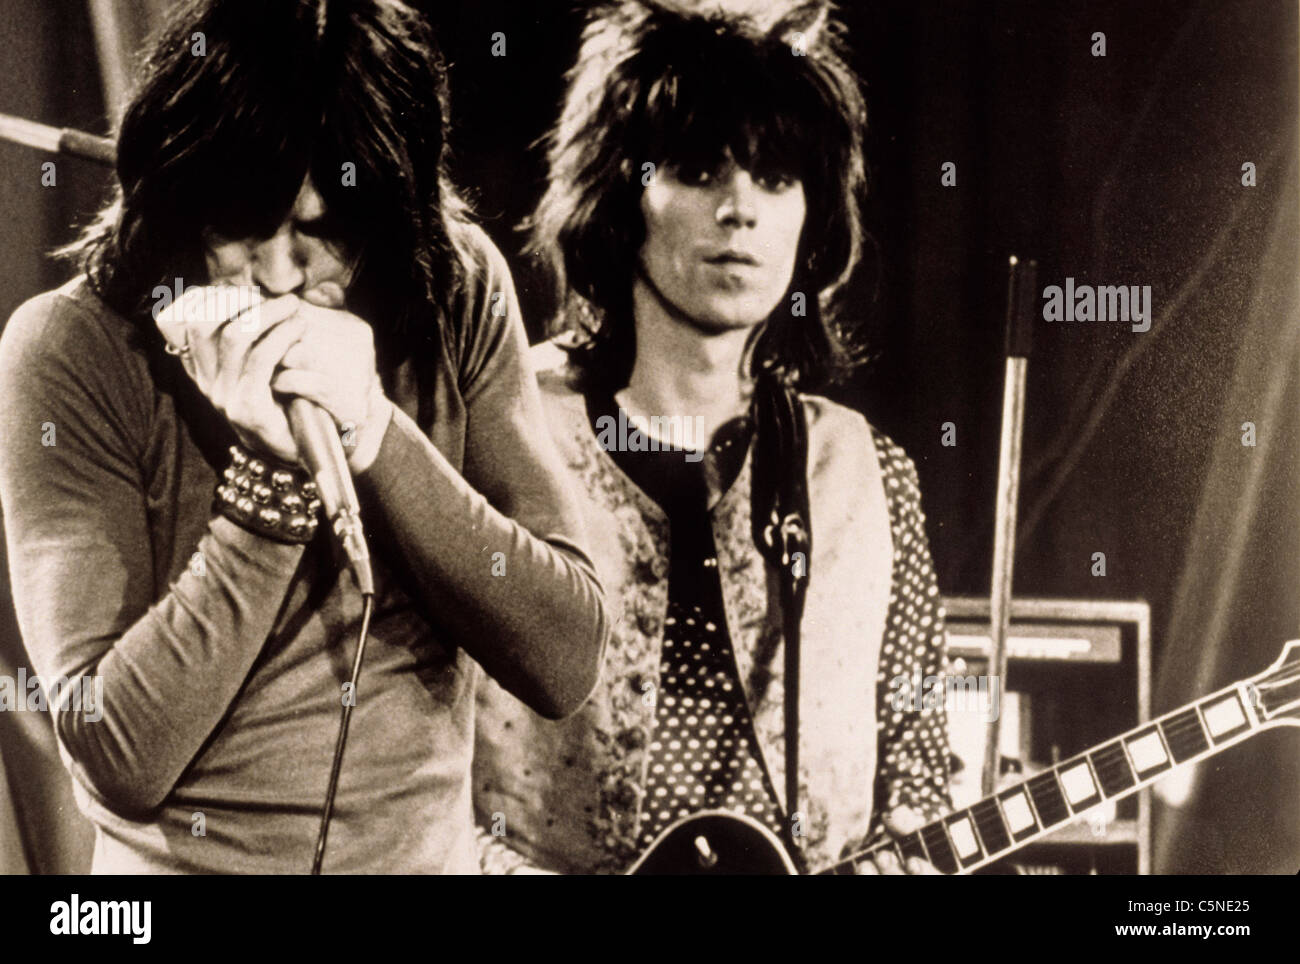 rolling stones, keith richards, mick jagger - Stock Image